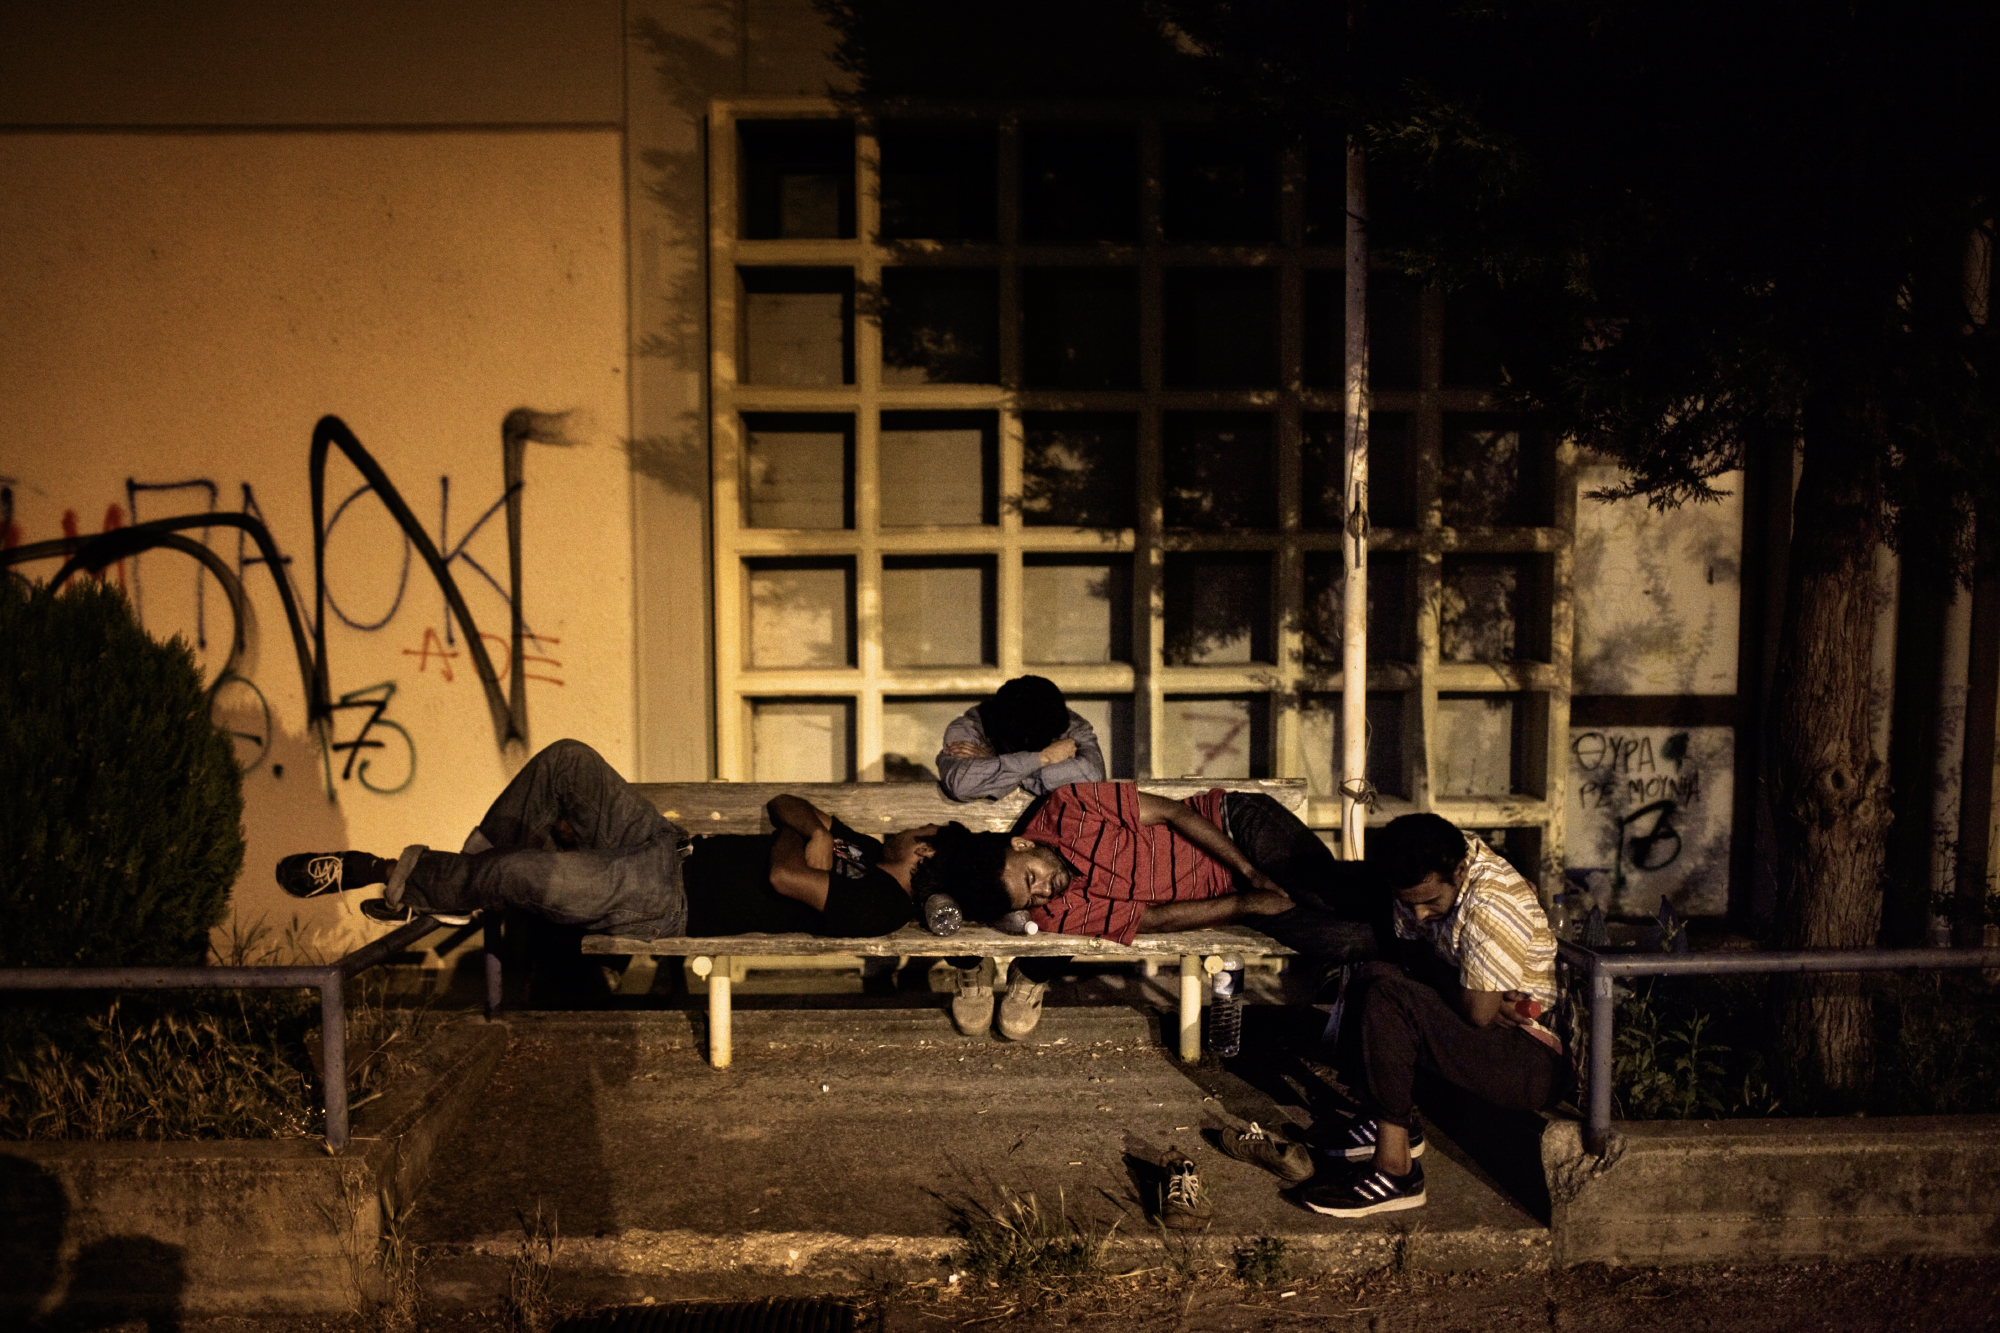 A group of migrants spends the night in the railway station of Orestiada, Greece, after crossing the border with Turkey.